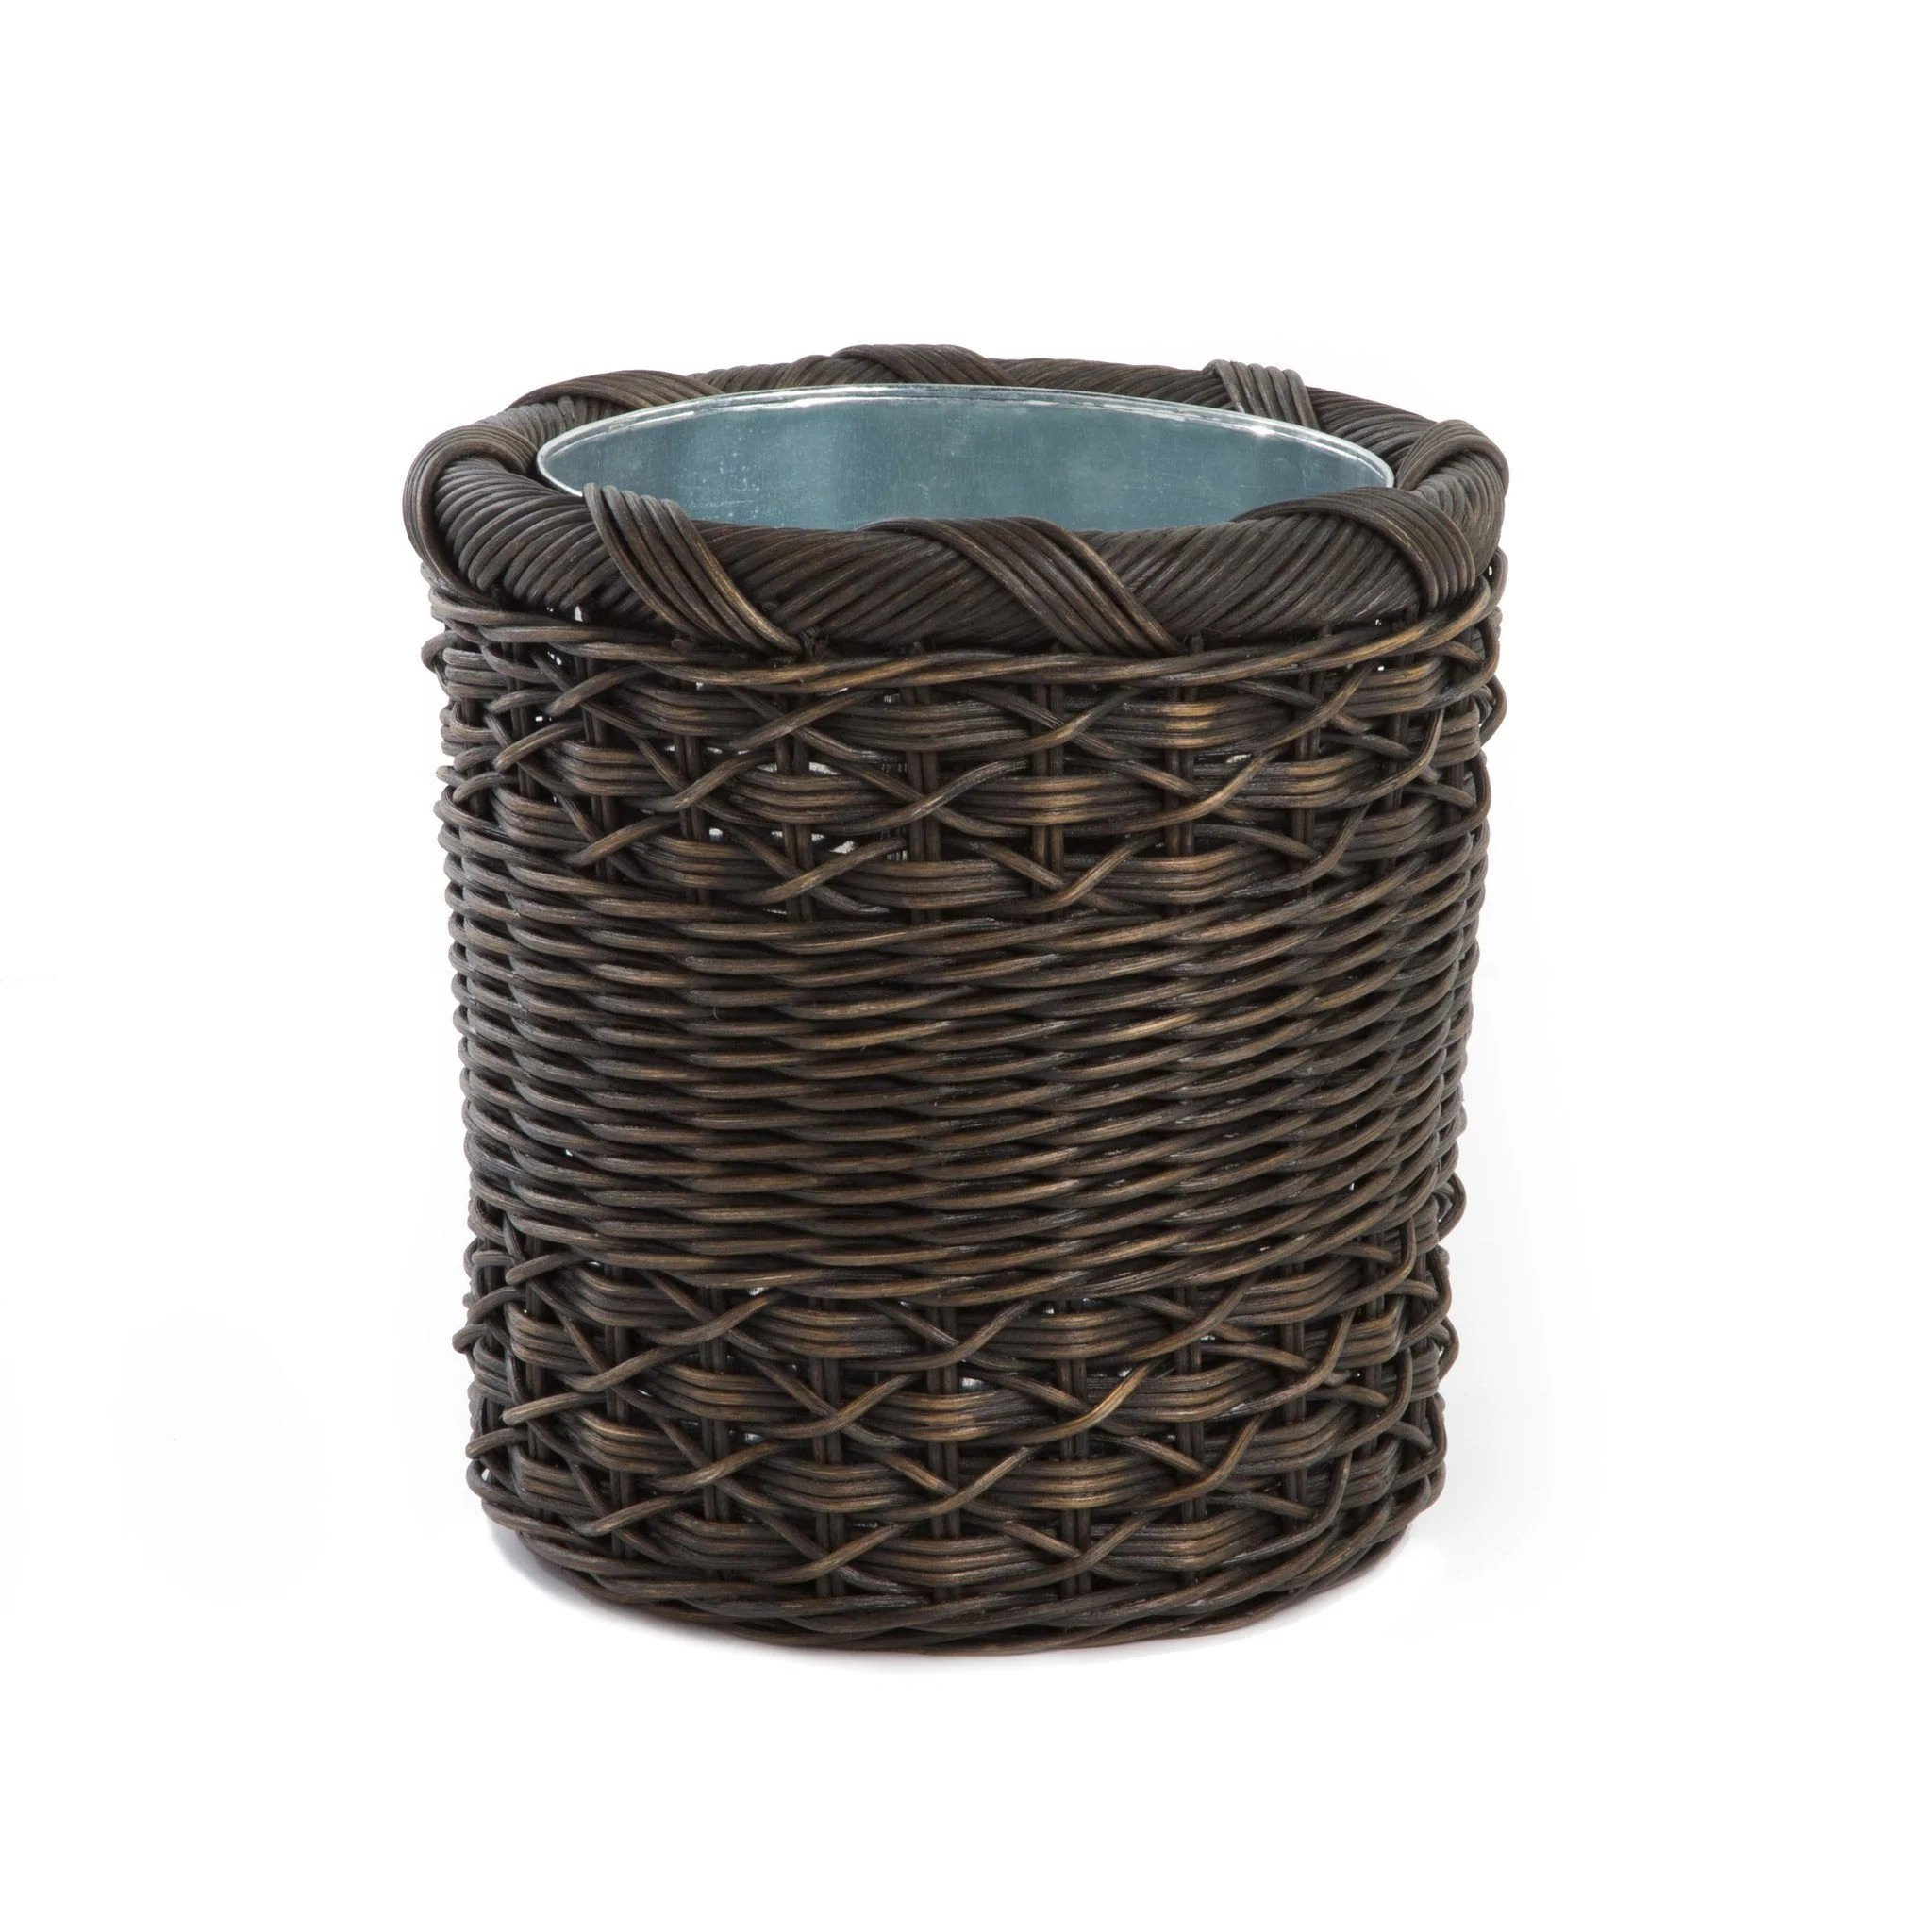 Wicker Waste & Recycling Cans Baskets And Bins